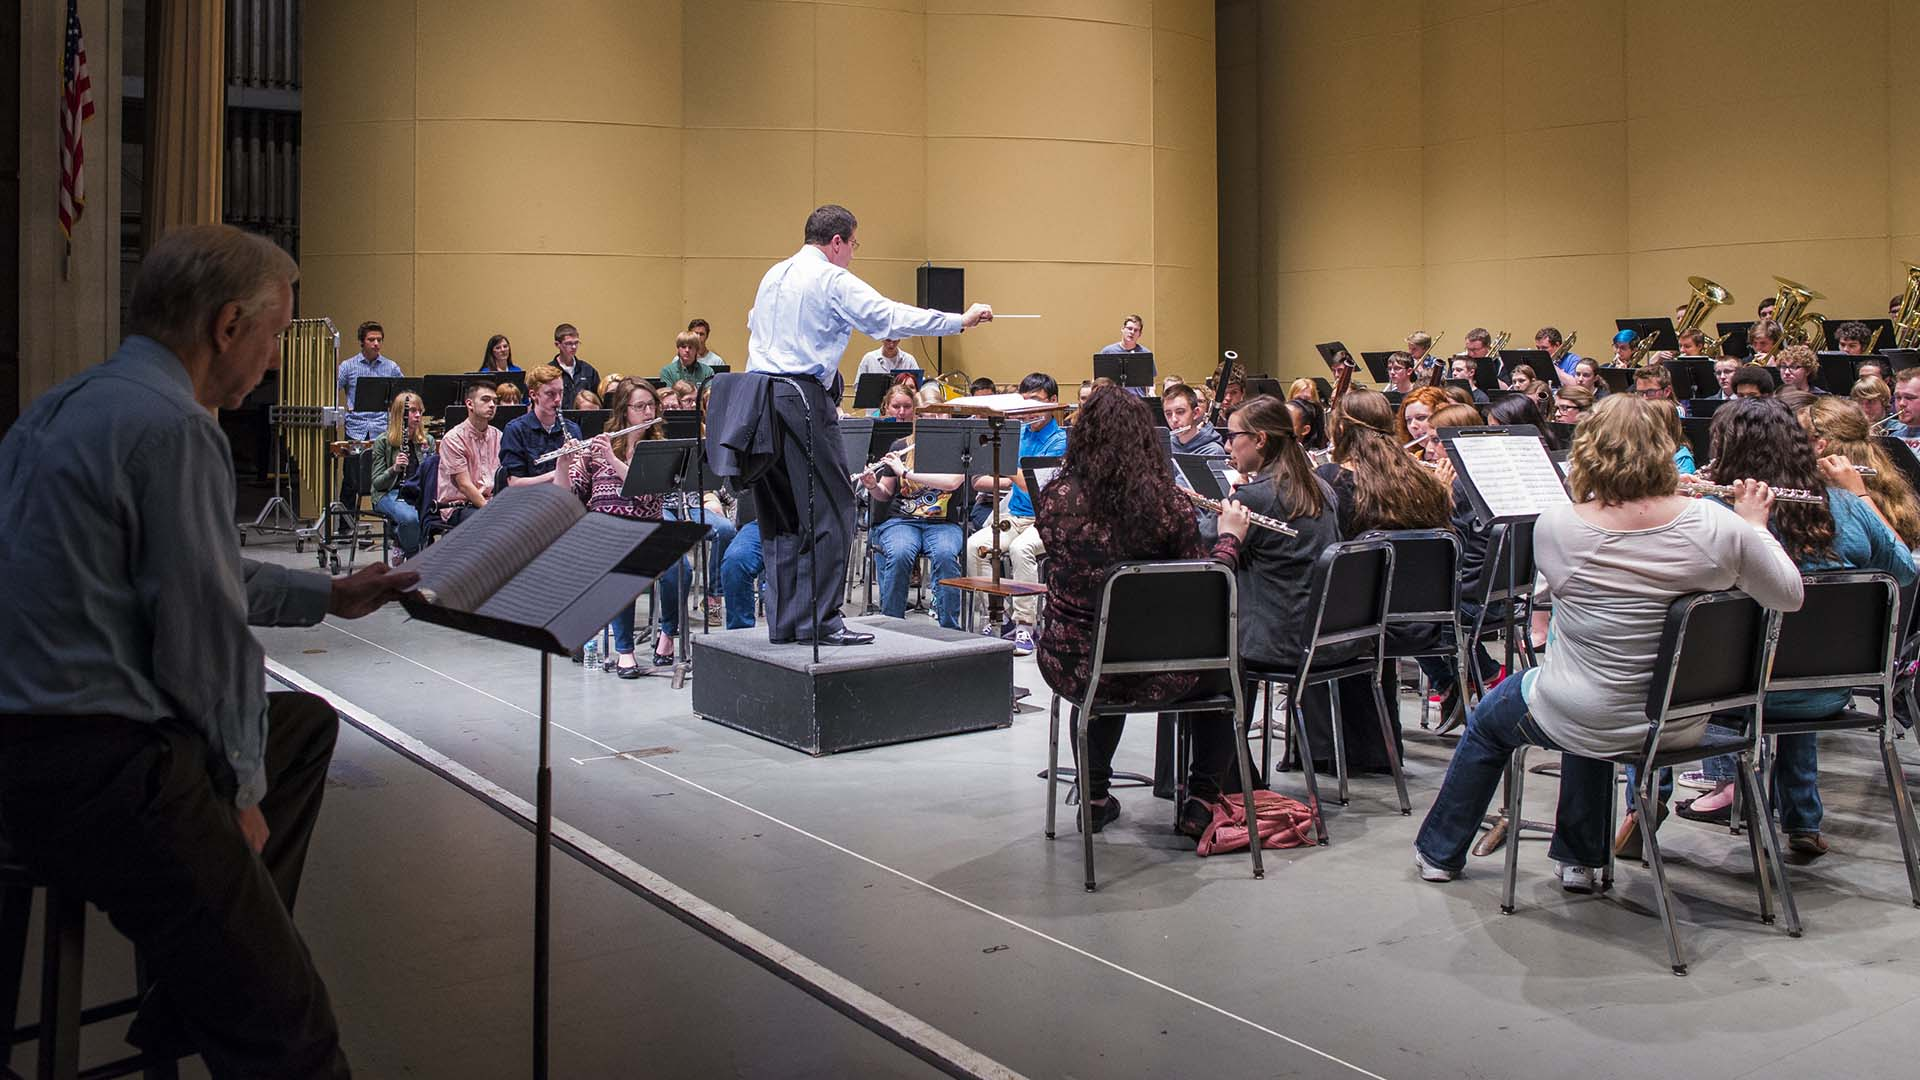 Spring Conference All-Star Band rehearsing with guest composer following the score seated on stage